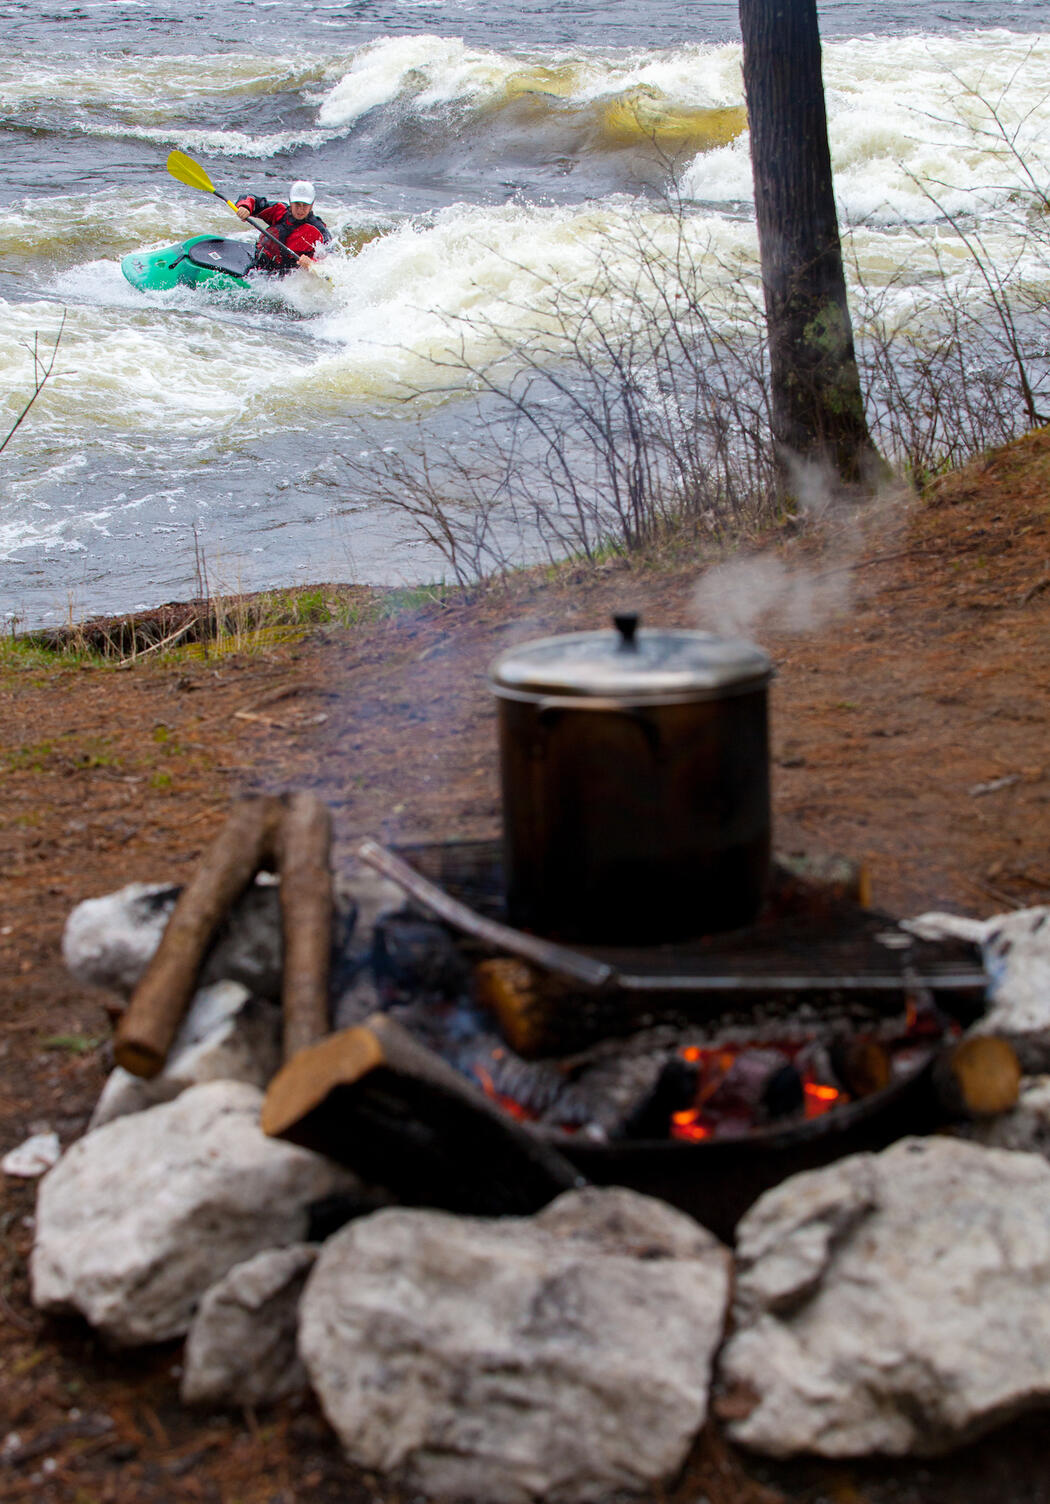 Steaming pot over campfire with a kayaker playing in whitewater in background